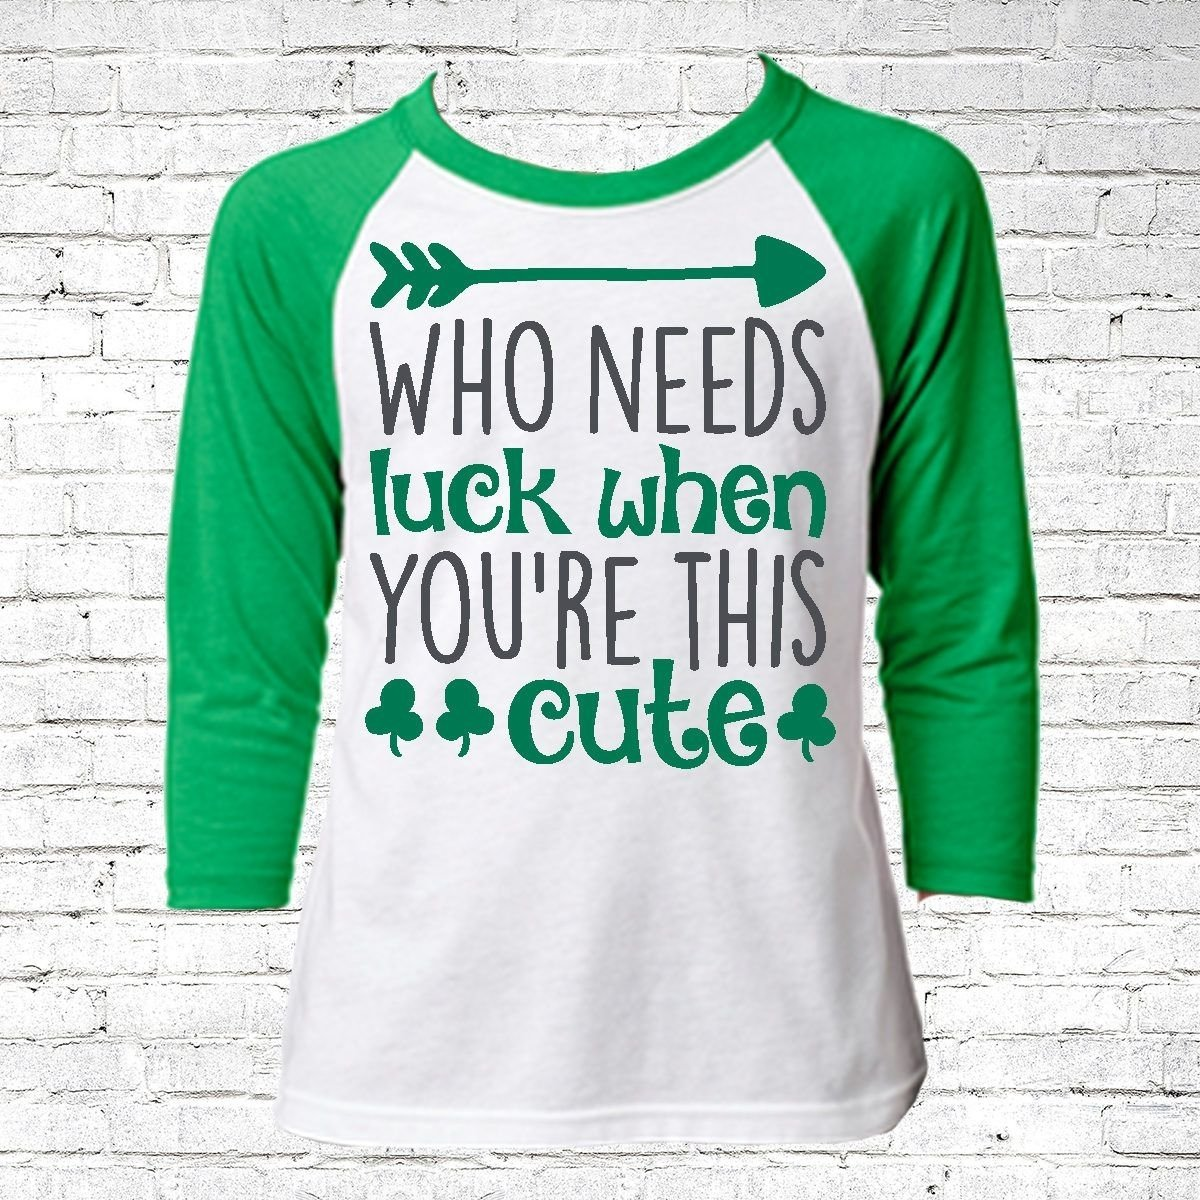 10 Wonderful St Patricks Day Shirt Ideas kids st patricks day shirt st patricks day shirt youth st patricks